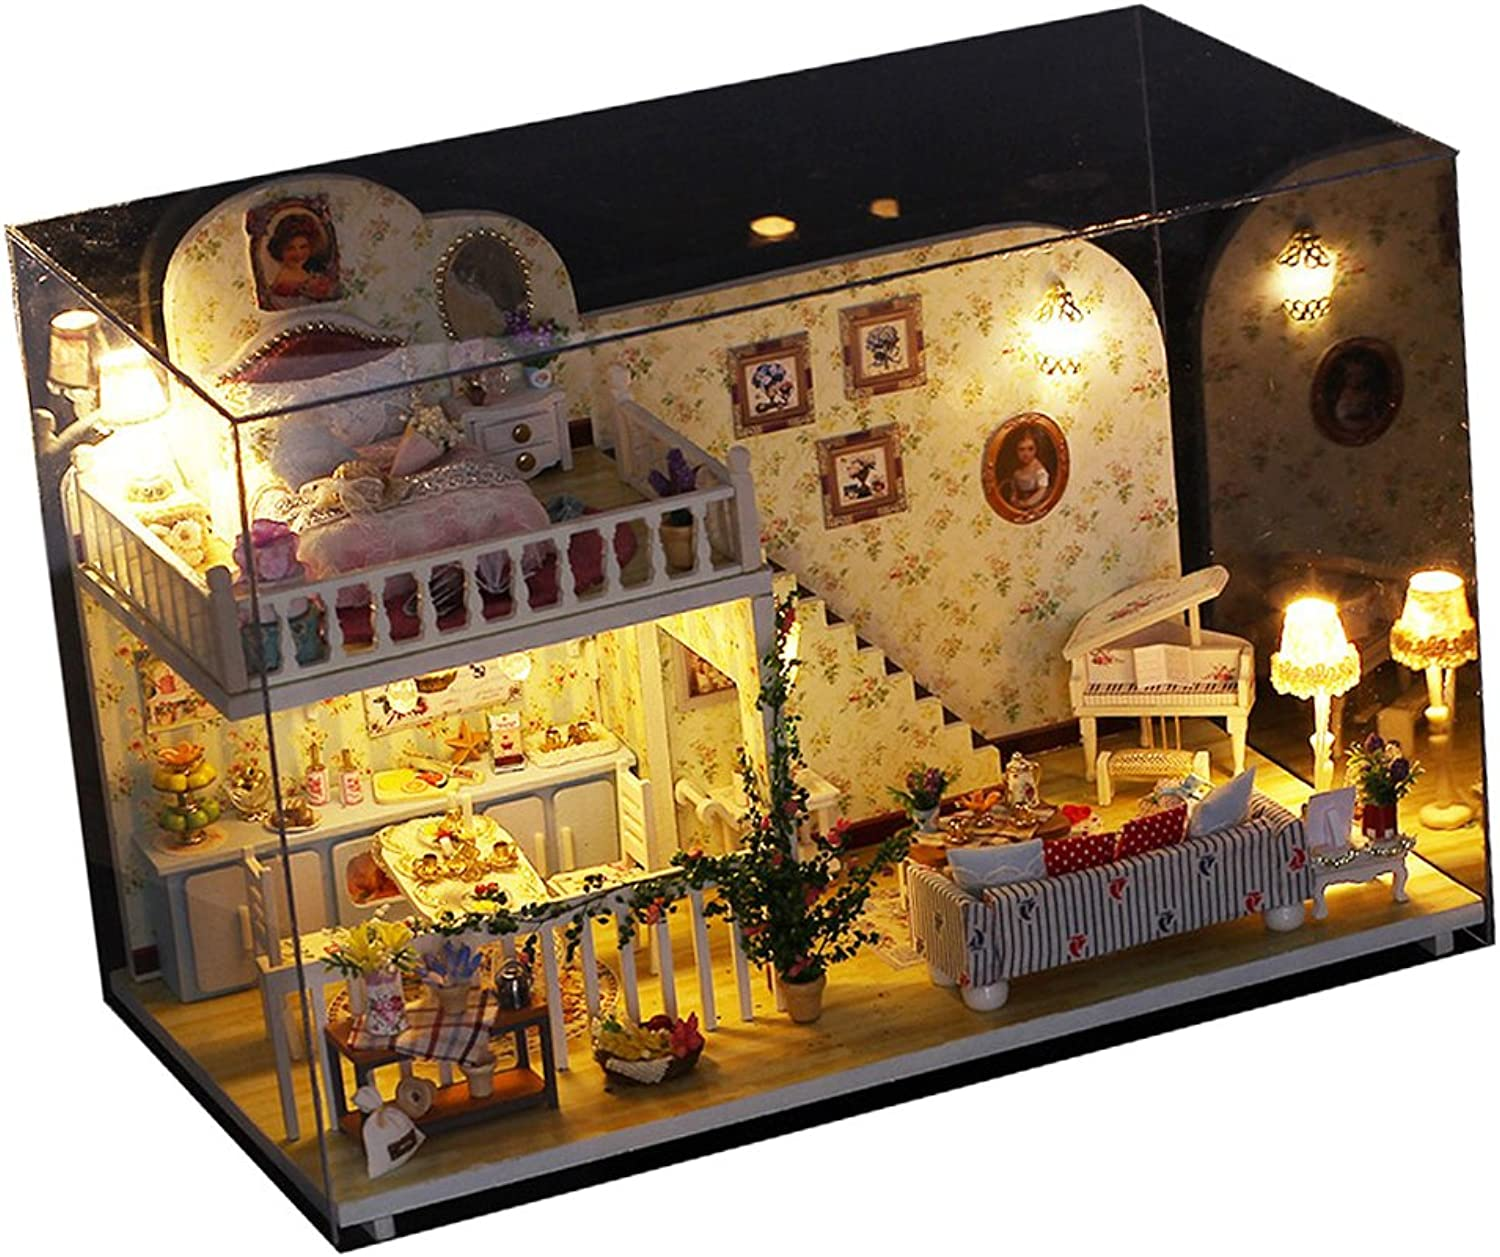 Homyl DIY Assembly Miniature Dollhouse Kit with Furniture, LED Light, Music Box and Dust Cover  3